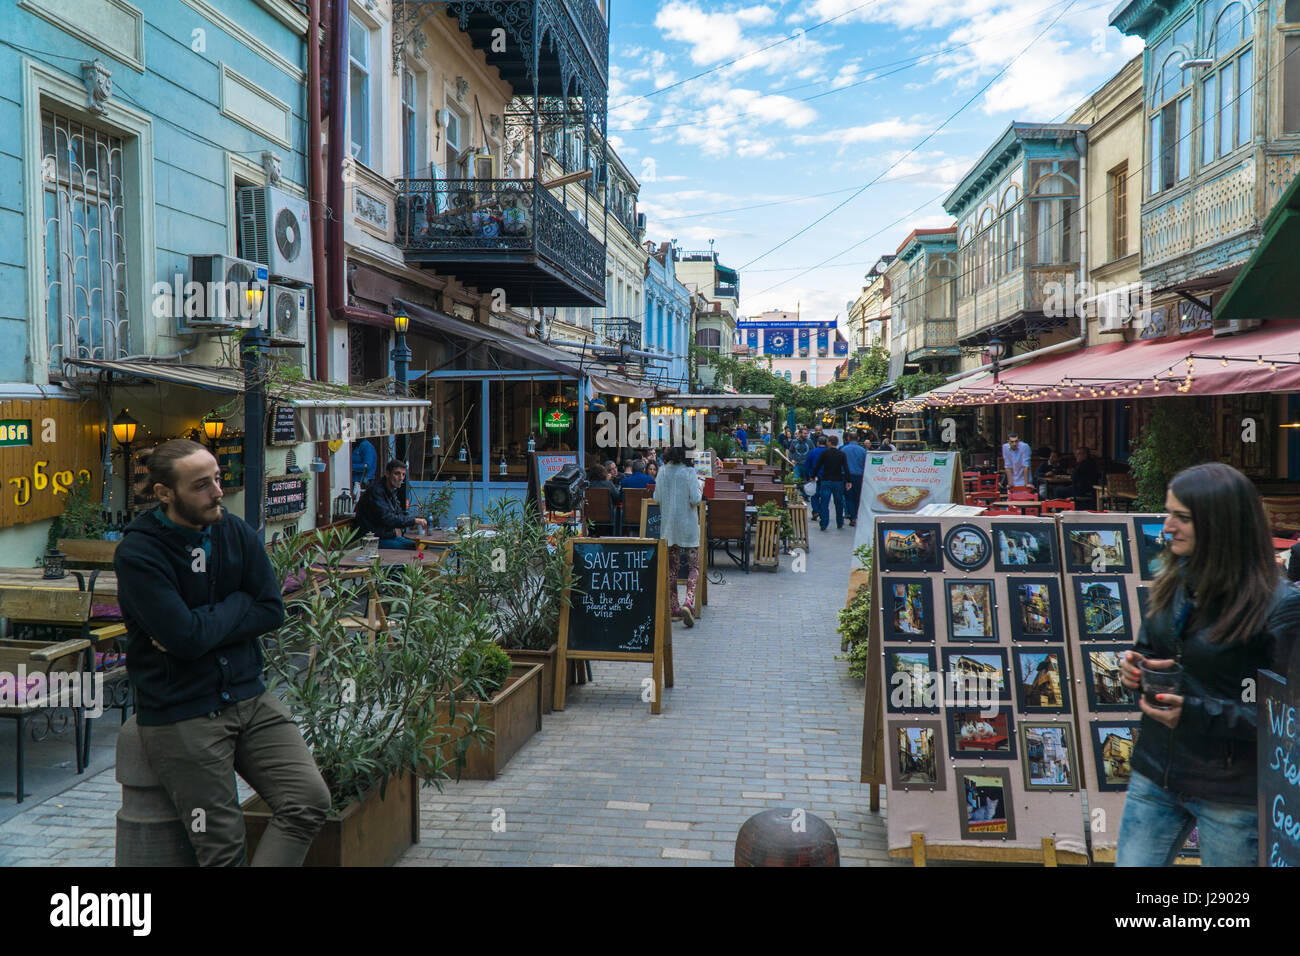 TBILISI, GEORGIA-SEP 25, 2016: People on a pedestrian street Sioni in heart of the old town. Stock Photo